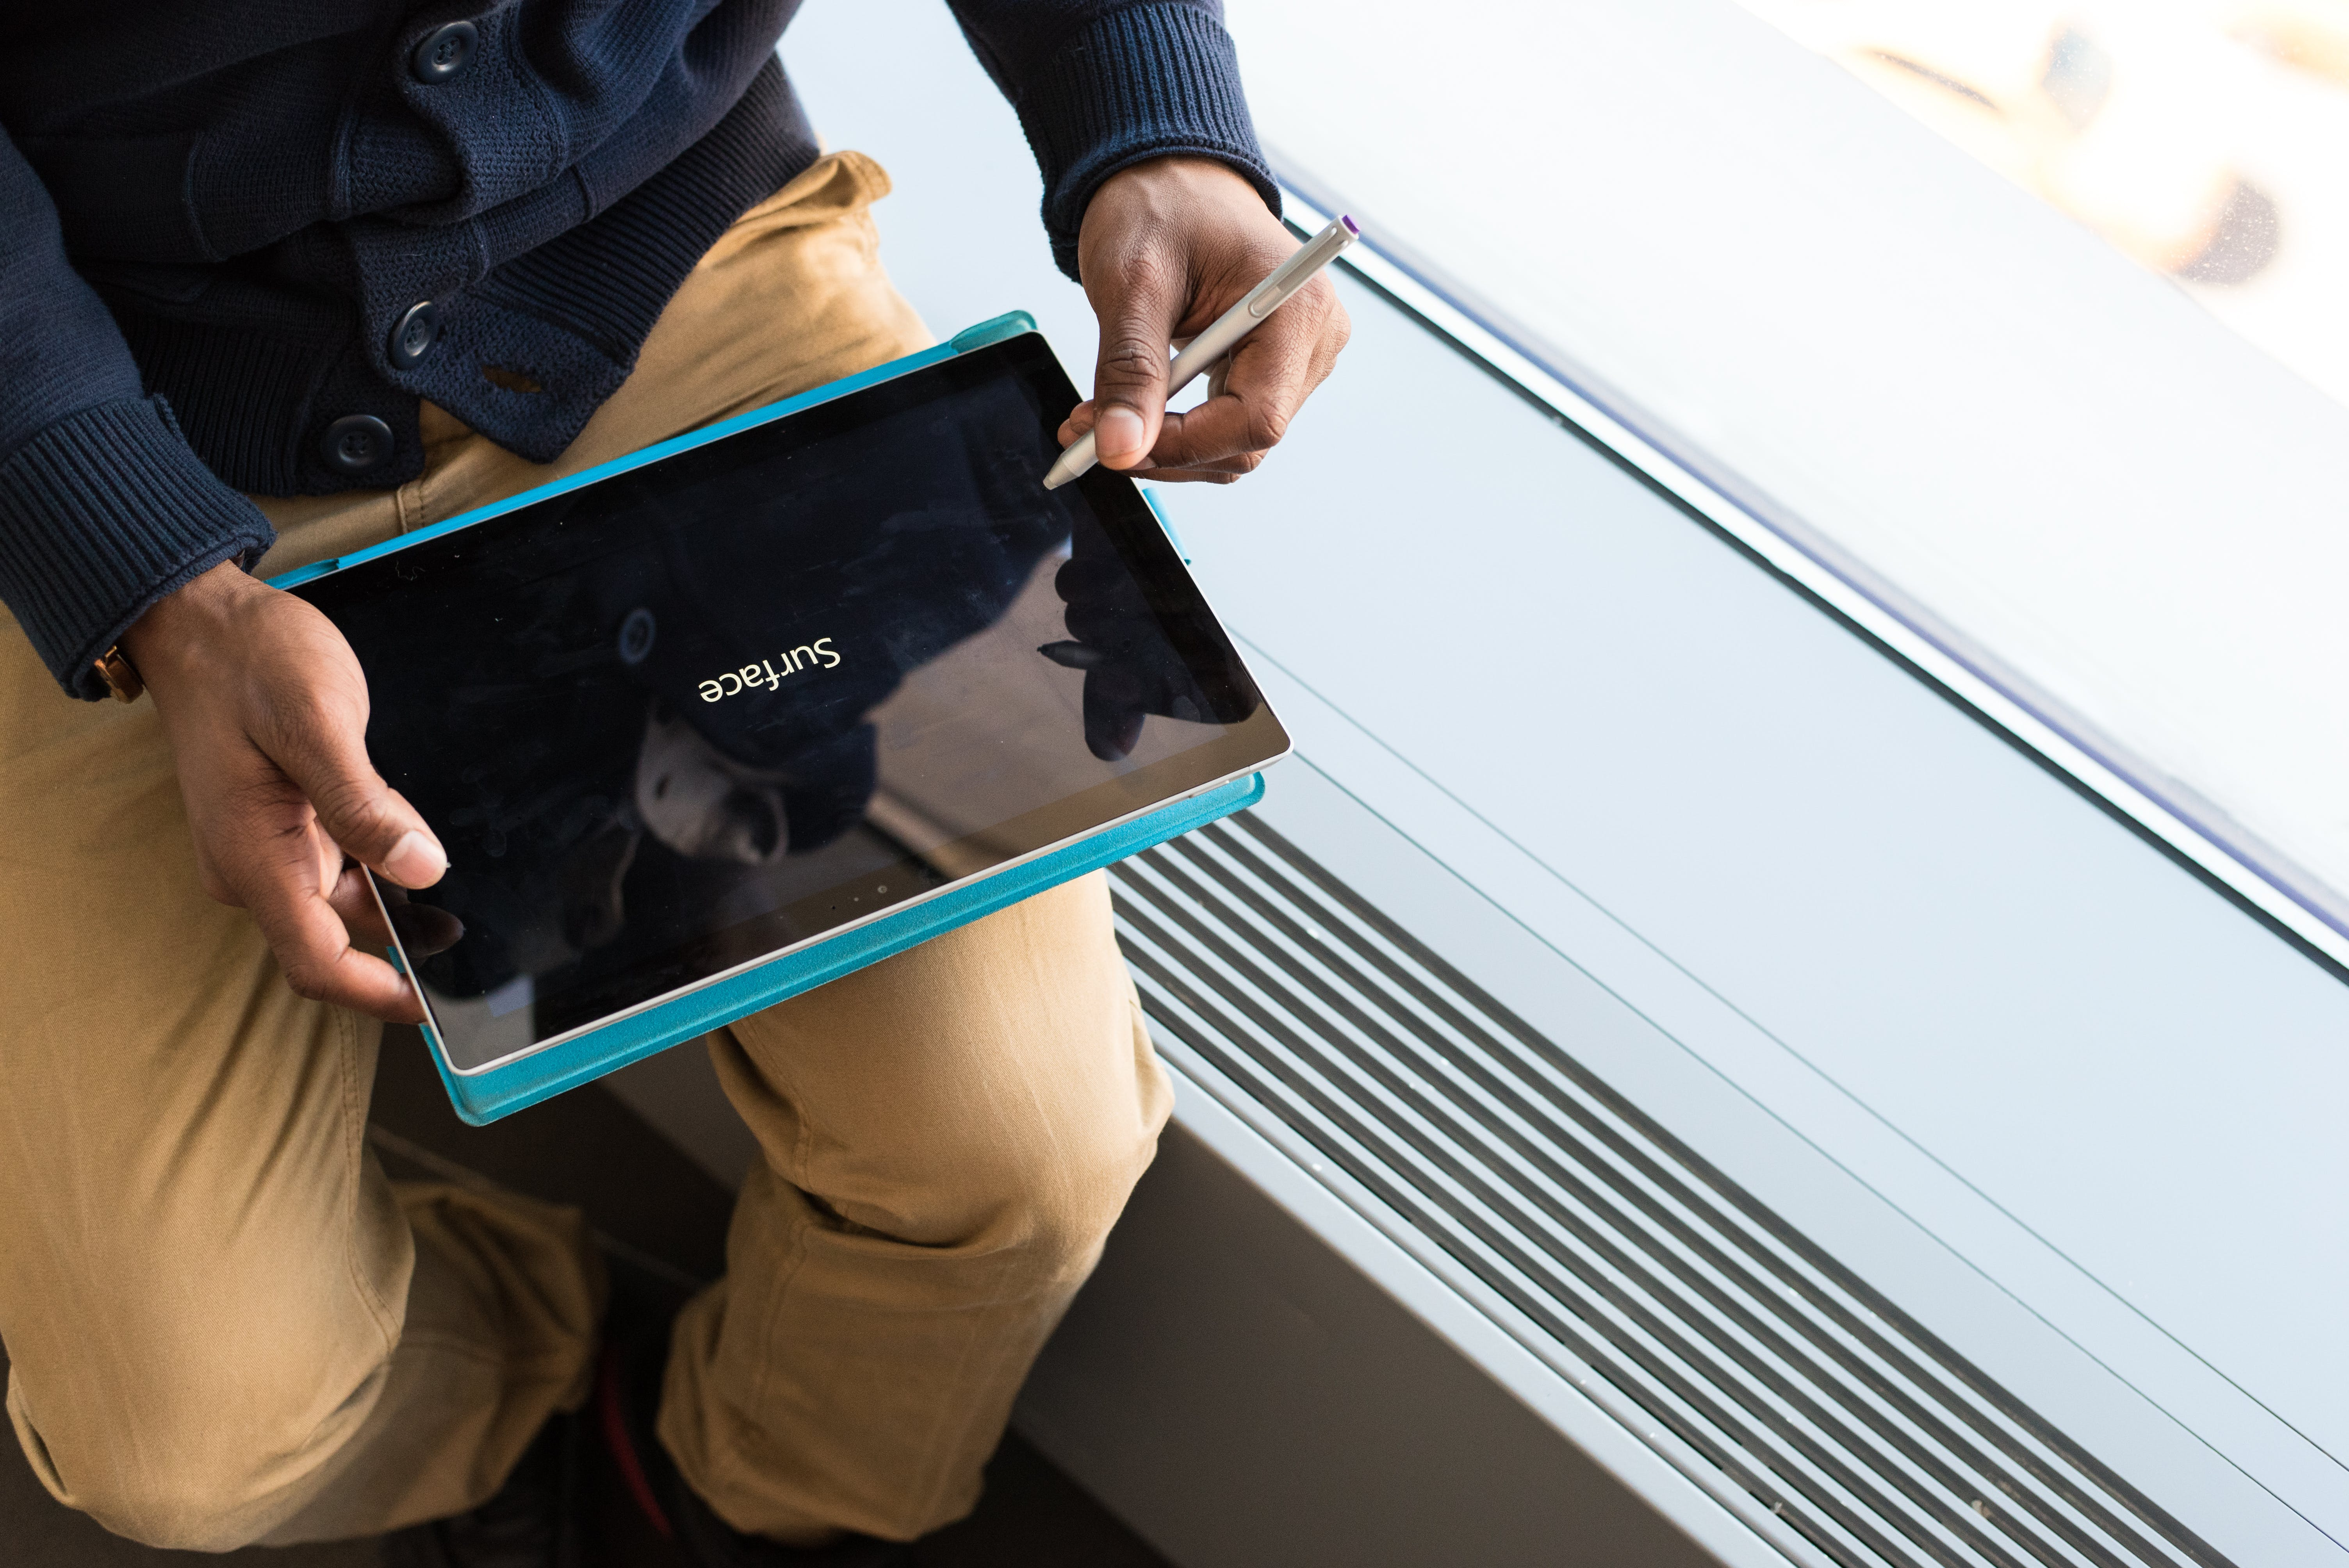 Person Wearing Brown Pants Holding Black Tablet Computer